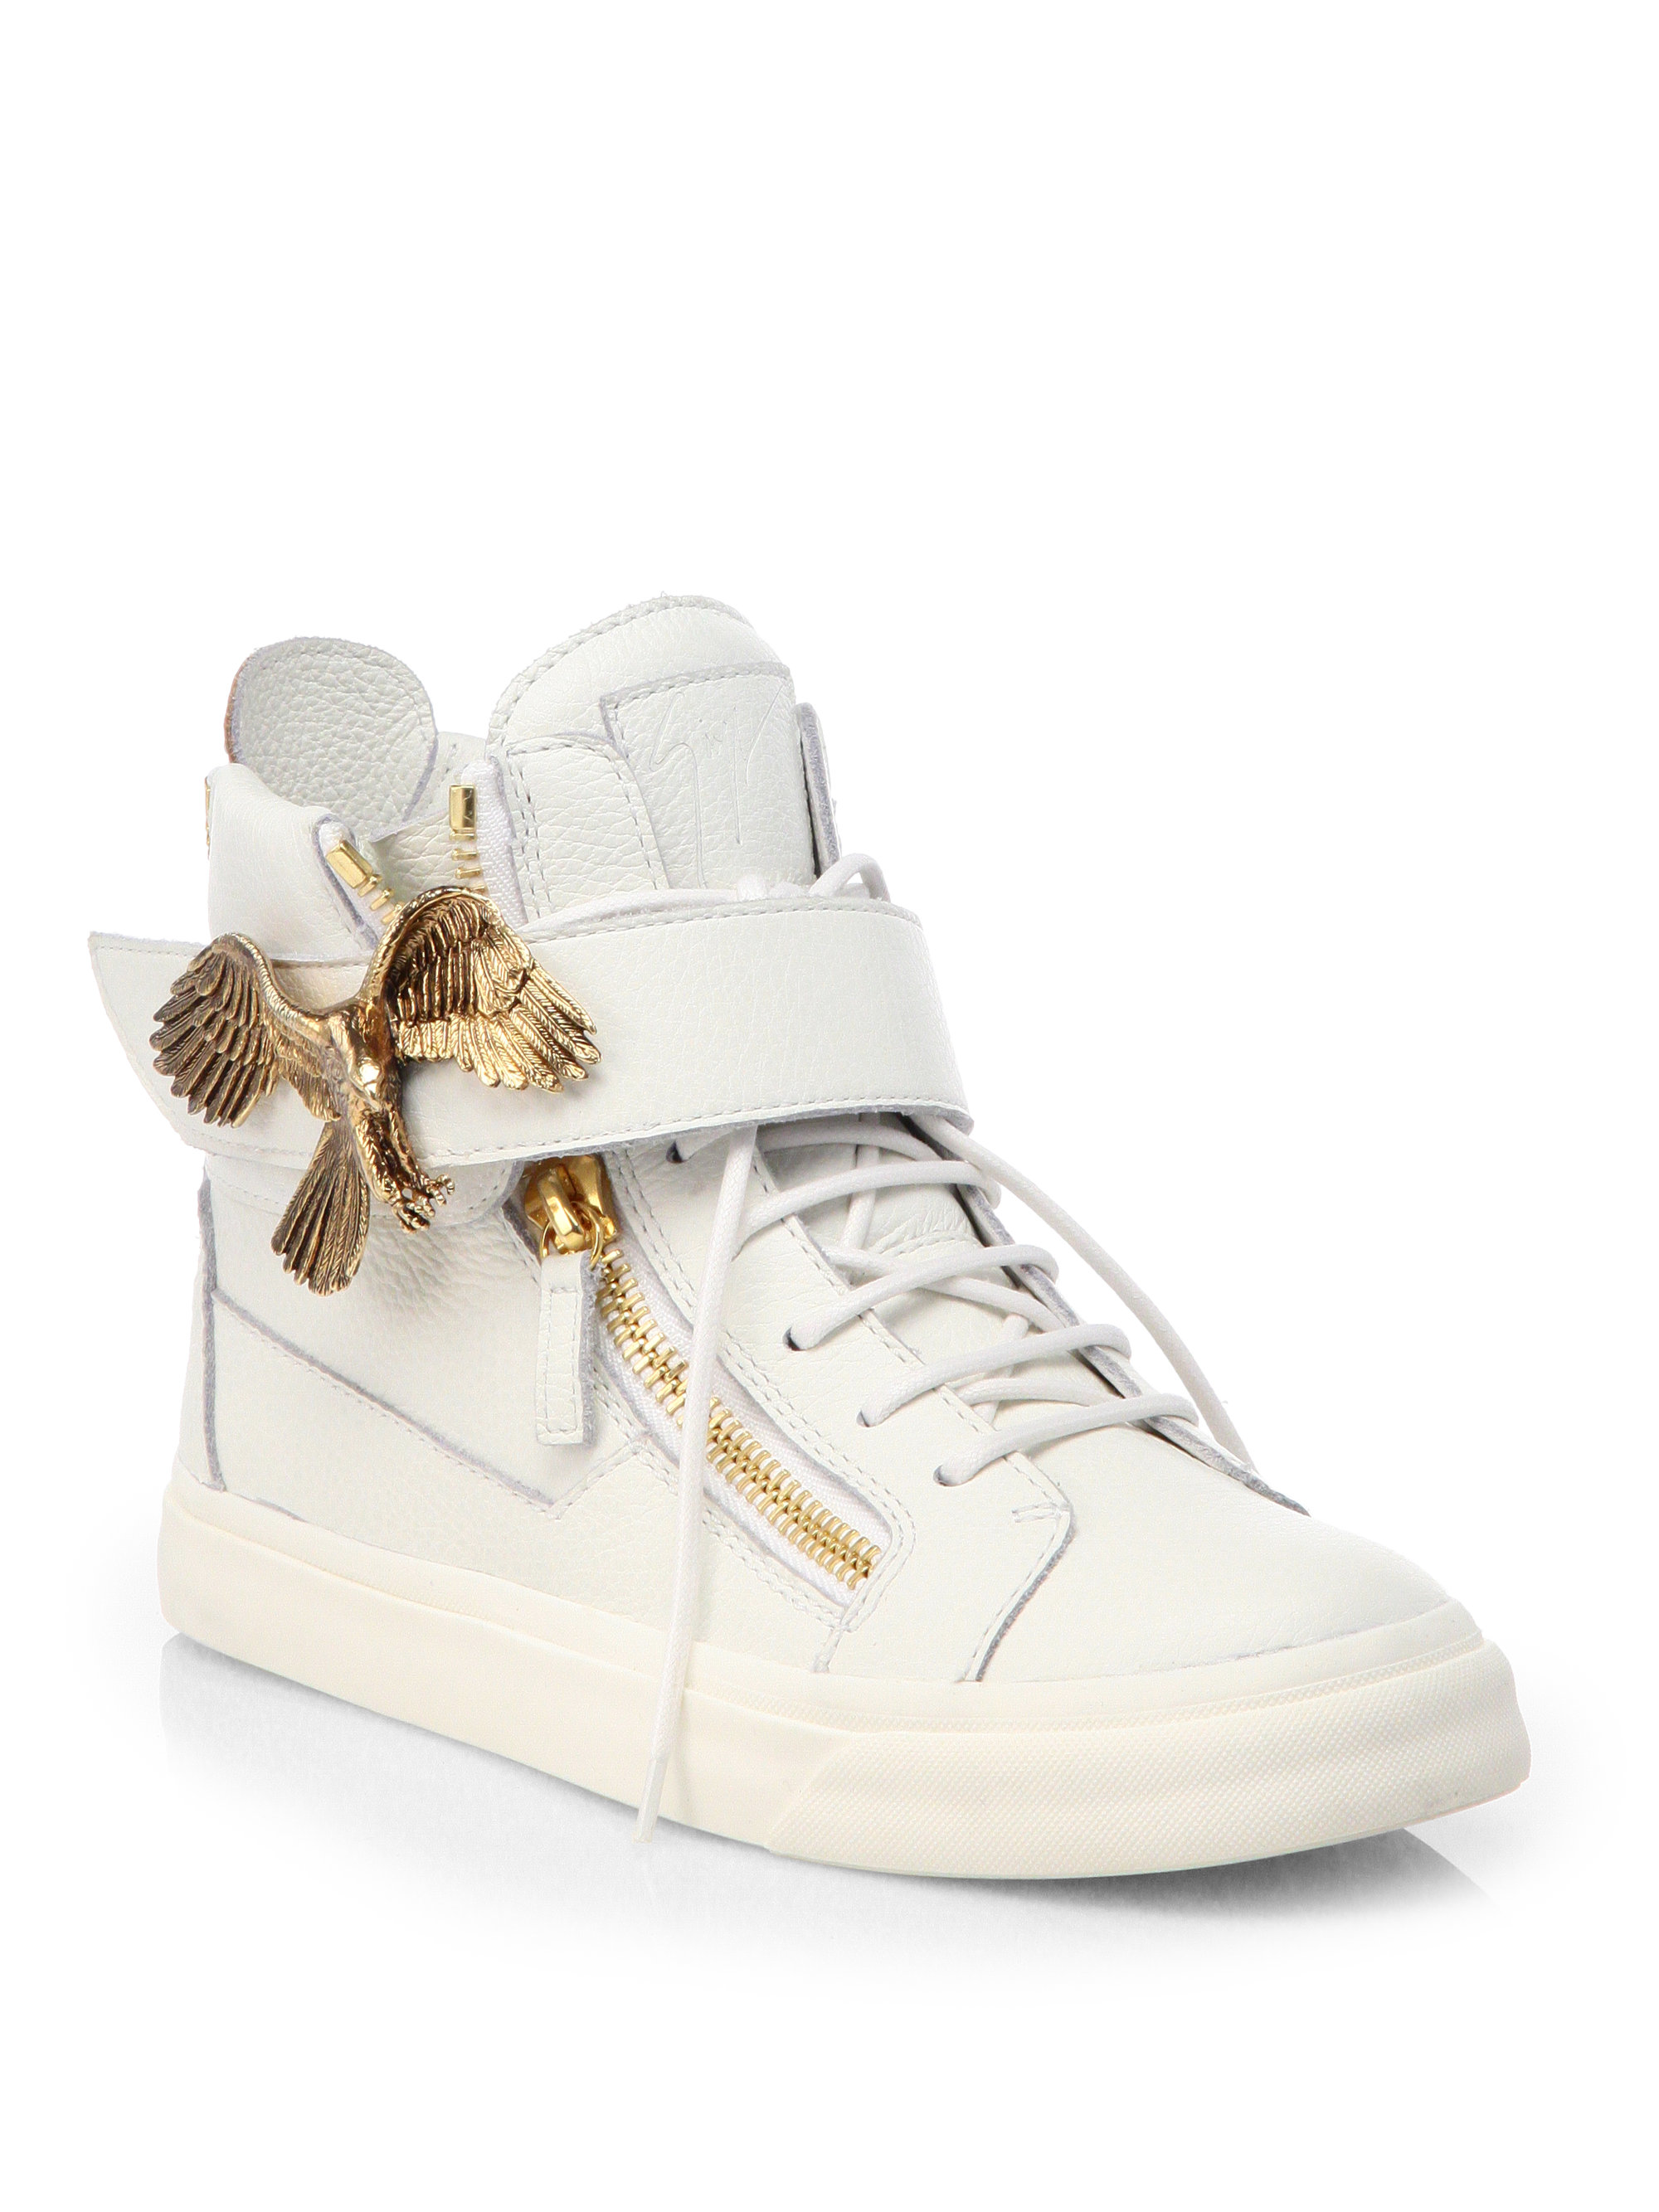 Giuseppe Zanotti Eagle Leather High Top Sneakers In White